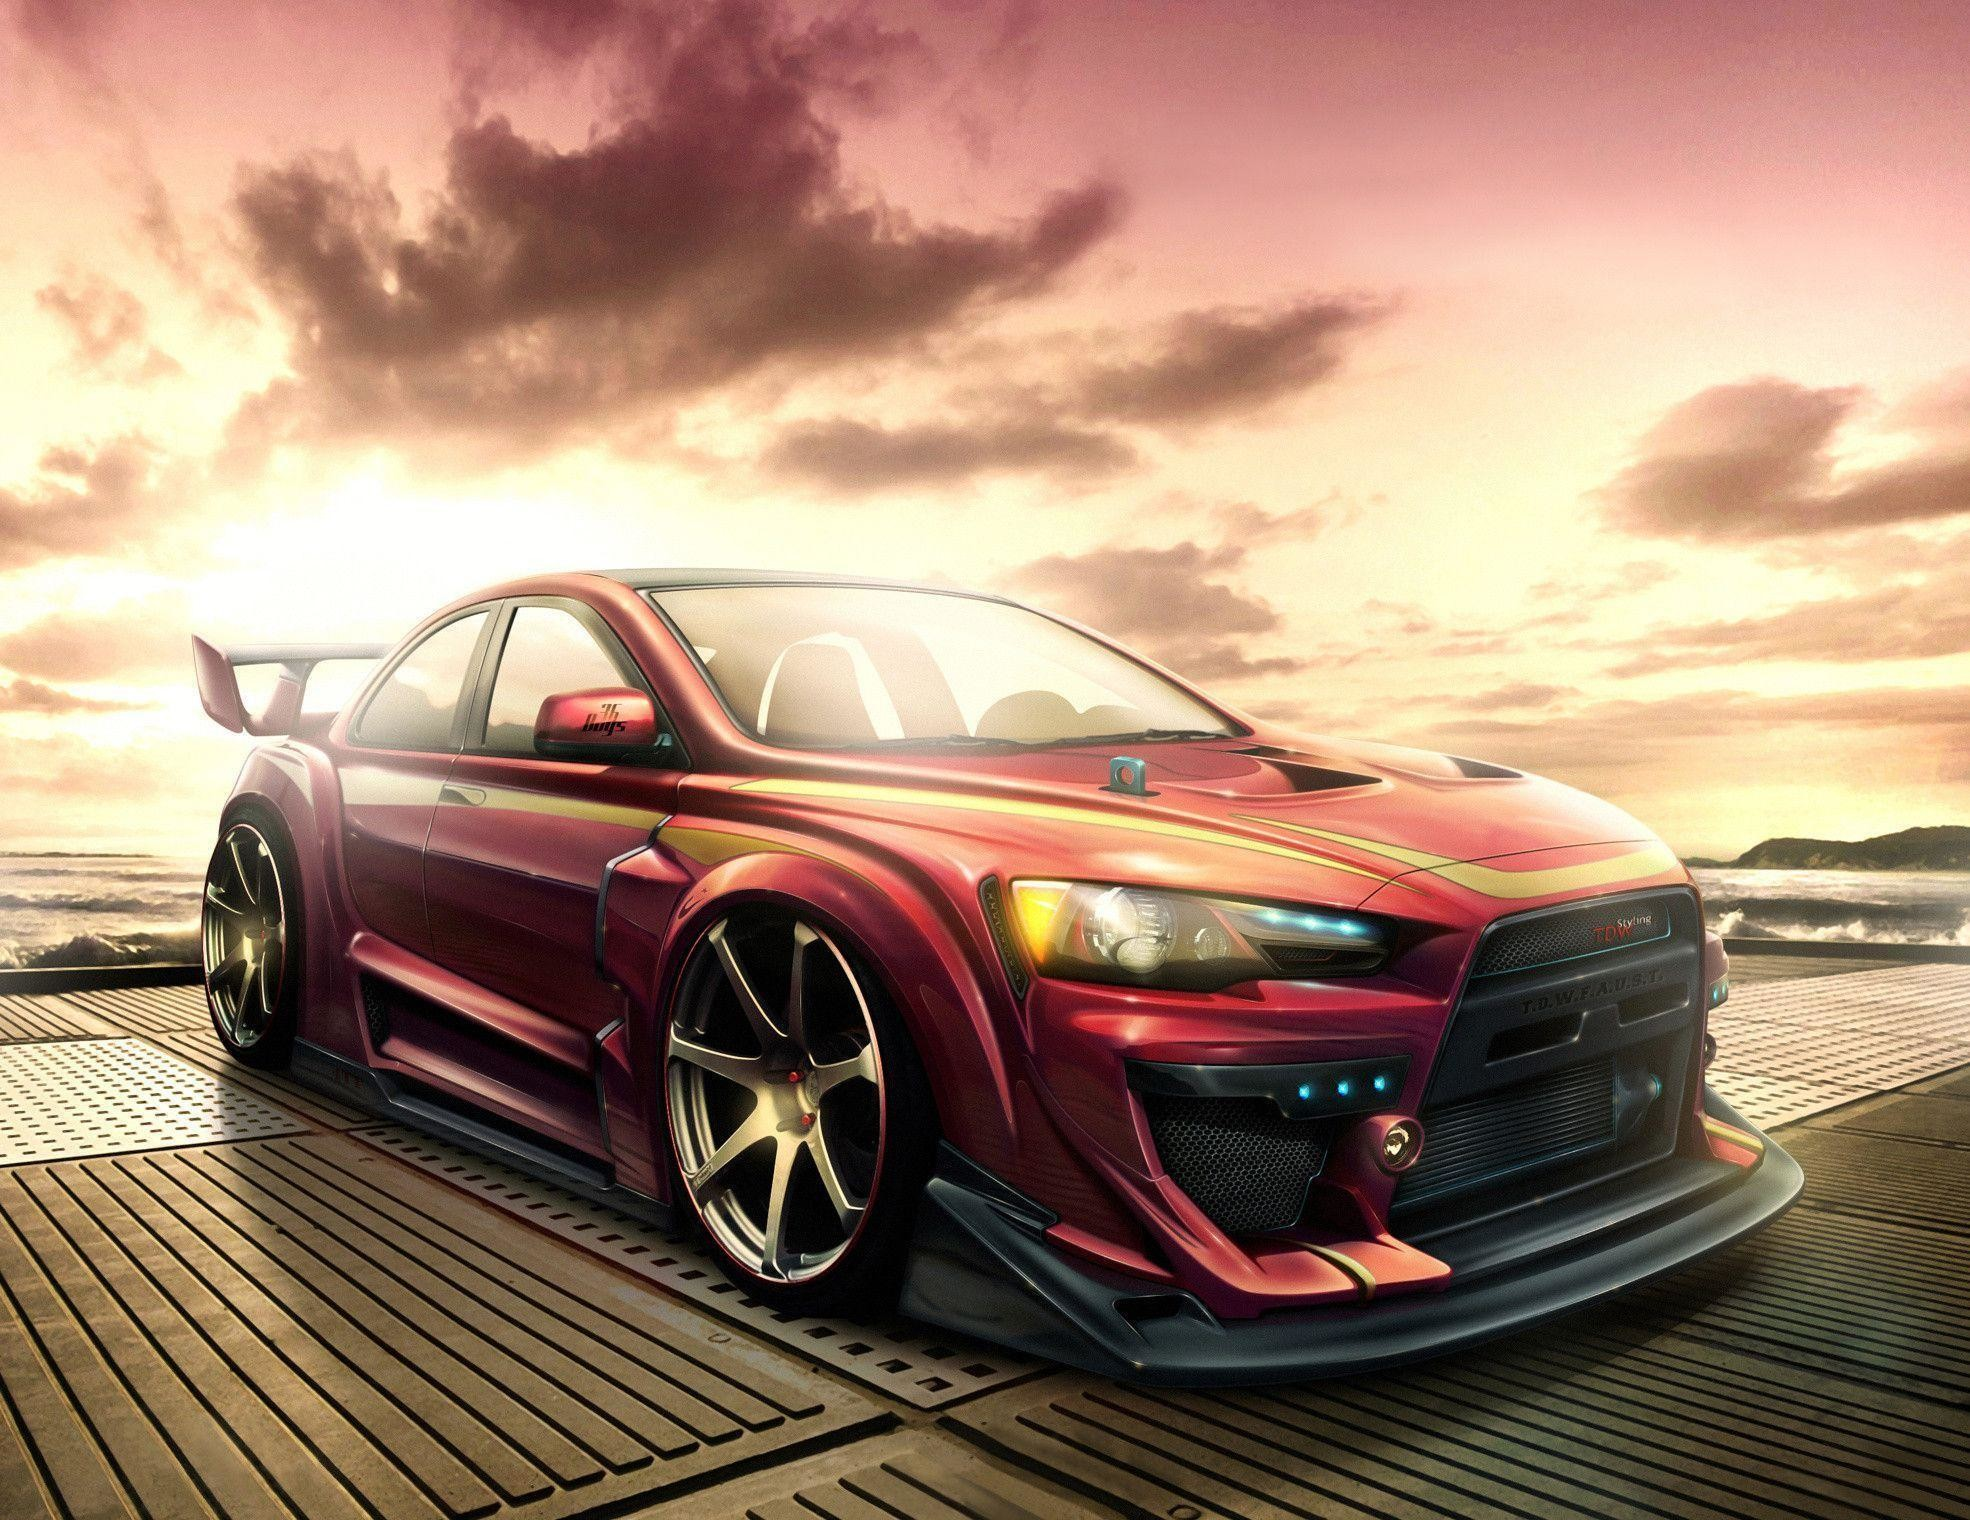 1970x1520 Lancer Evolution X Wallpaper Photos #9305 Wallpaper | Wallpaper .